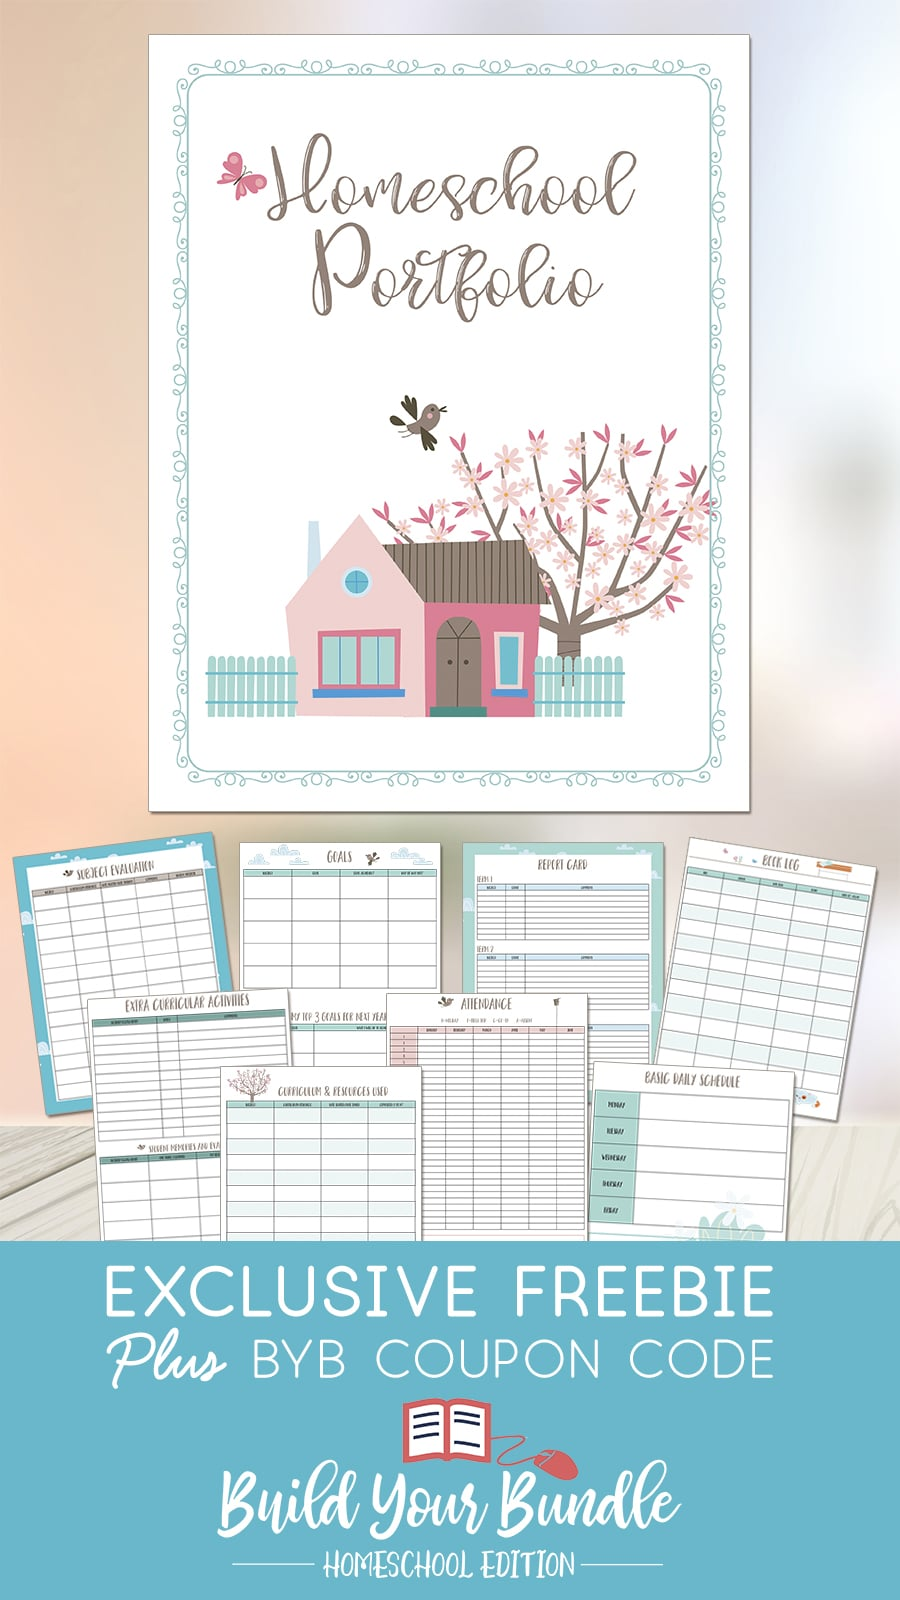 Year round homeschooling on feedspot rss feed printer paper fandeluxe Choice Image